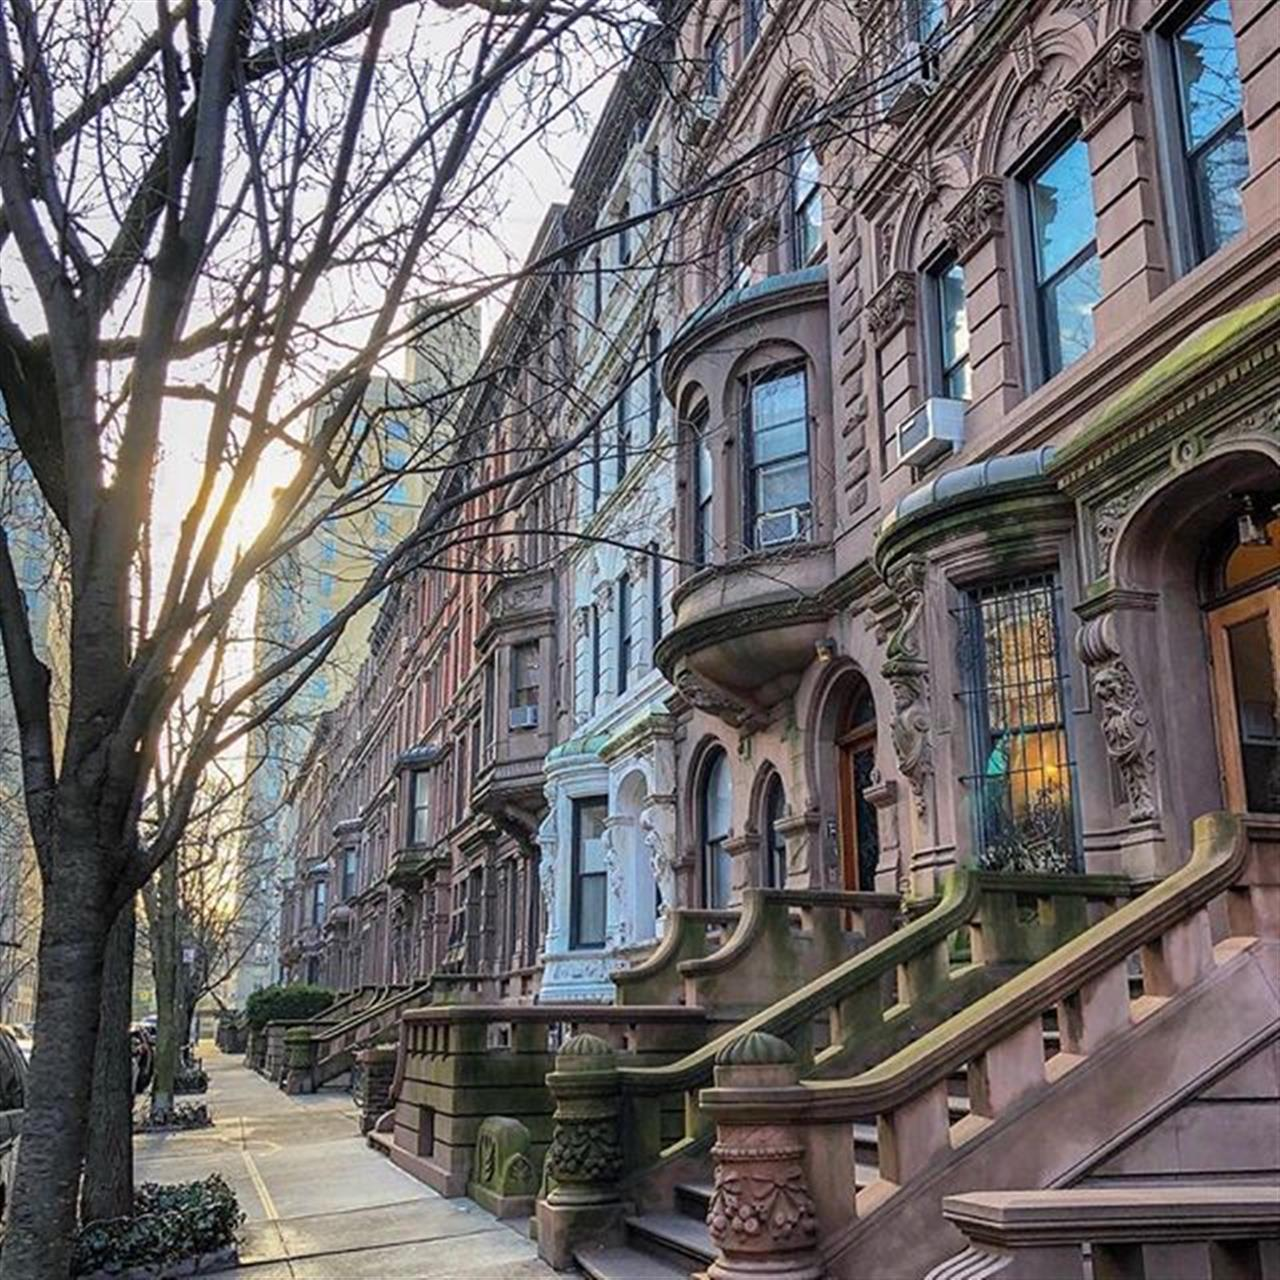 Upper West Side #townhouse #uws #upperwestside #townhouseliving #Realestate #maryanncjohnson #halstead #leadingrelocal